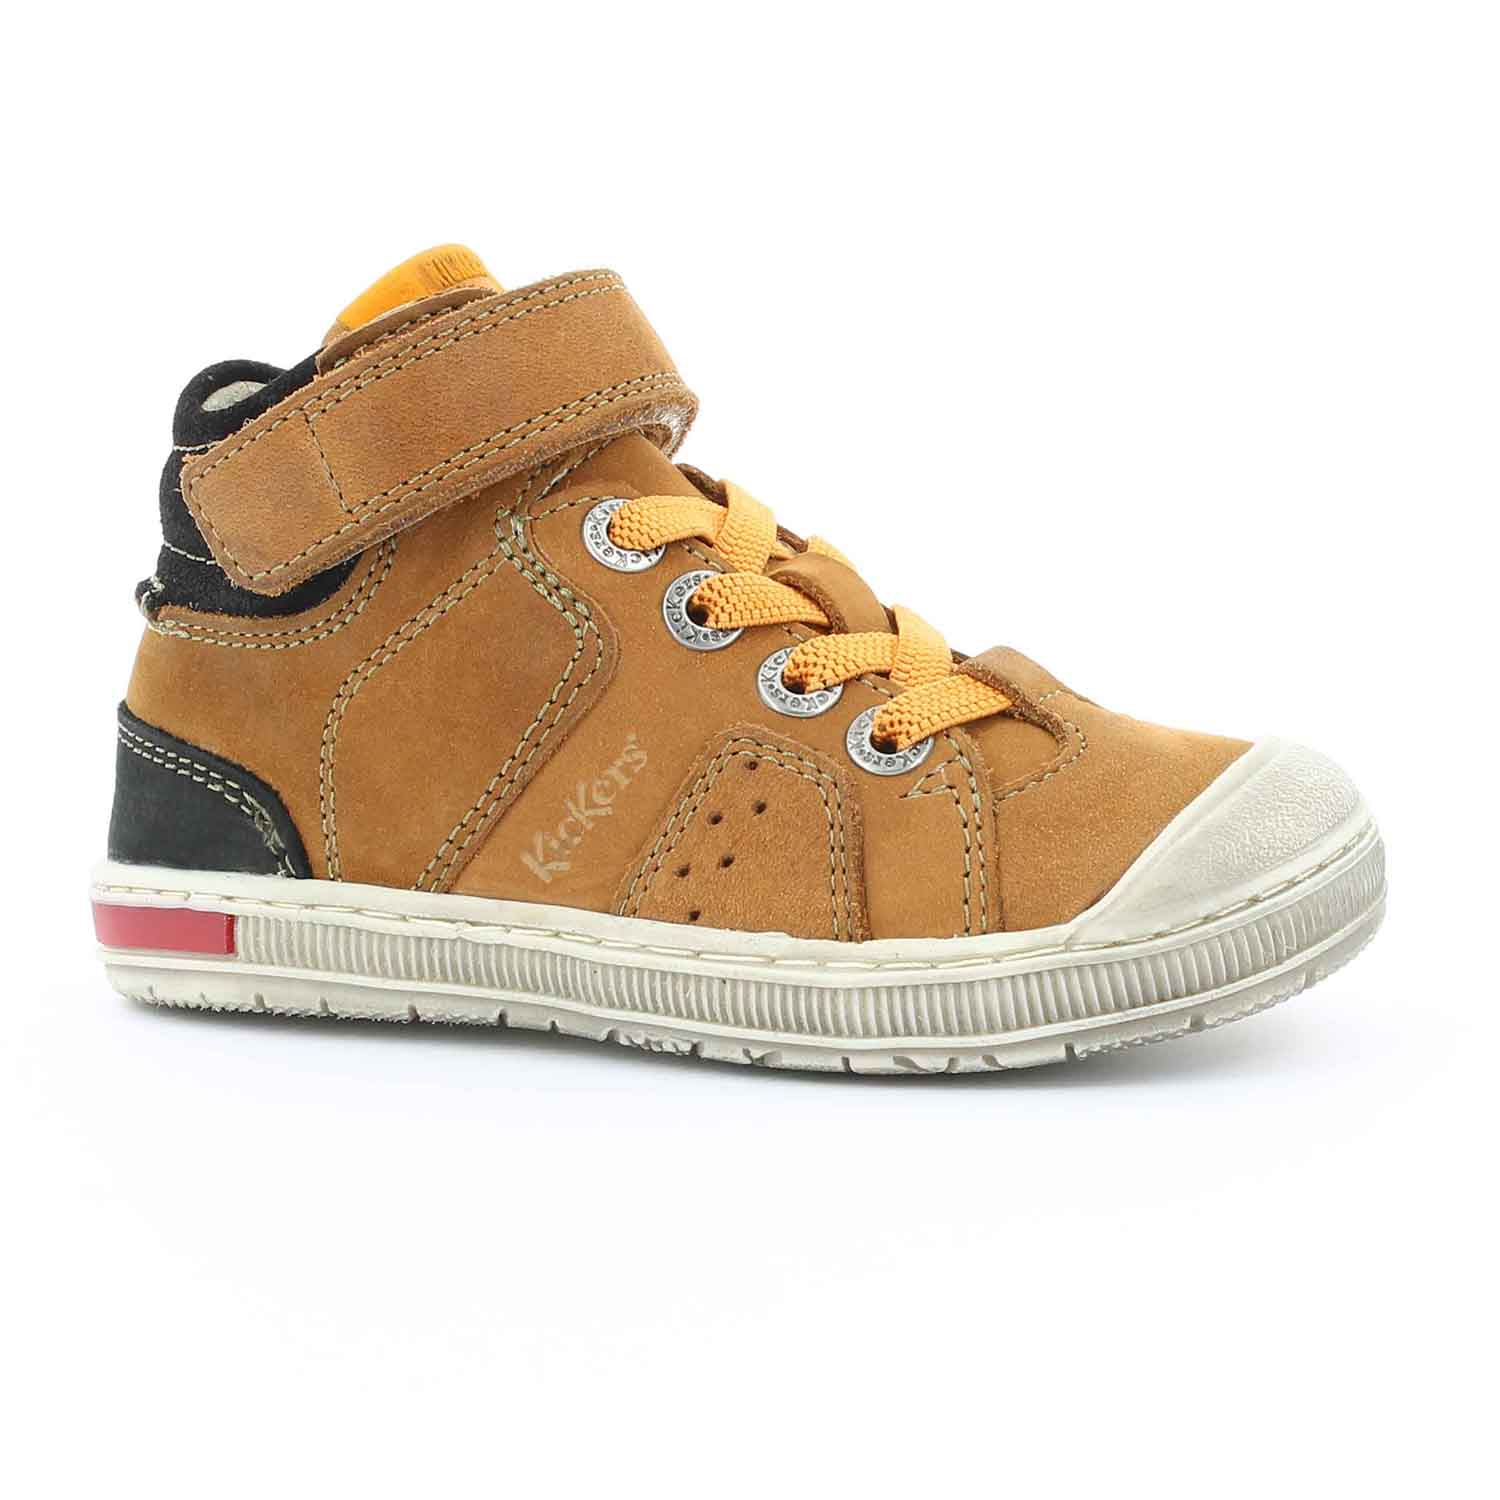 KICKERS - Παιδικά δερμάτινα μποτάκια IGUANE KICKERS καφέ - Roe Shoes ... f4ee412905e